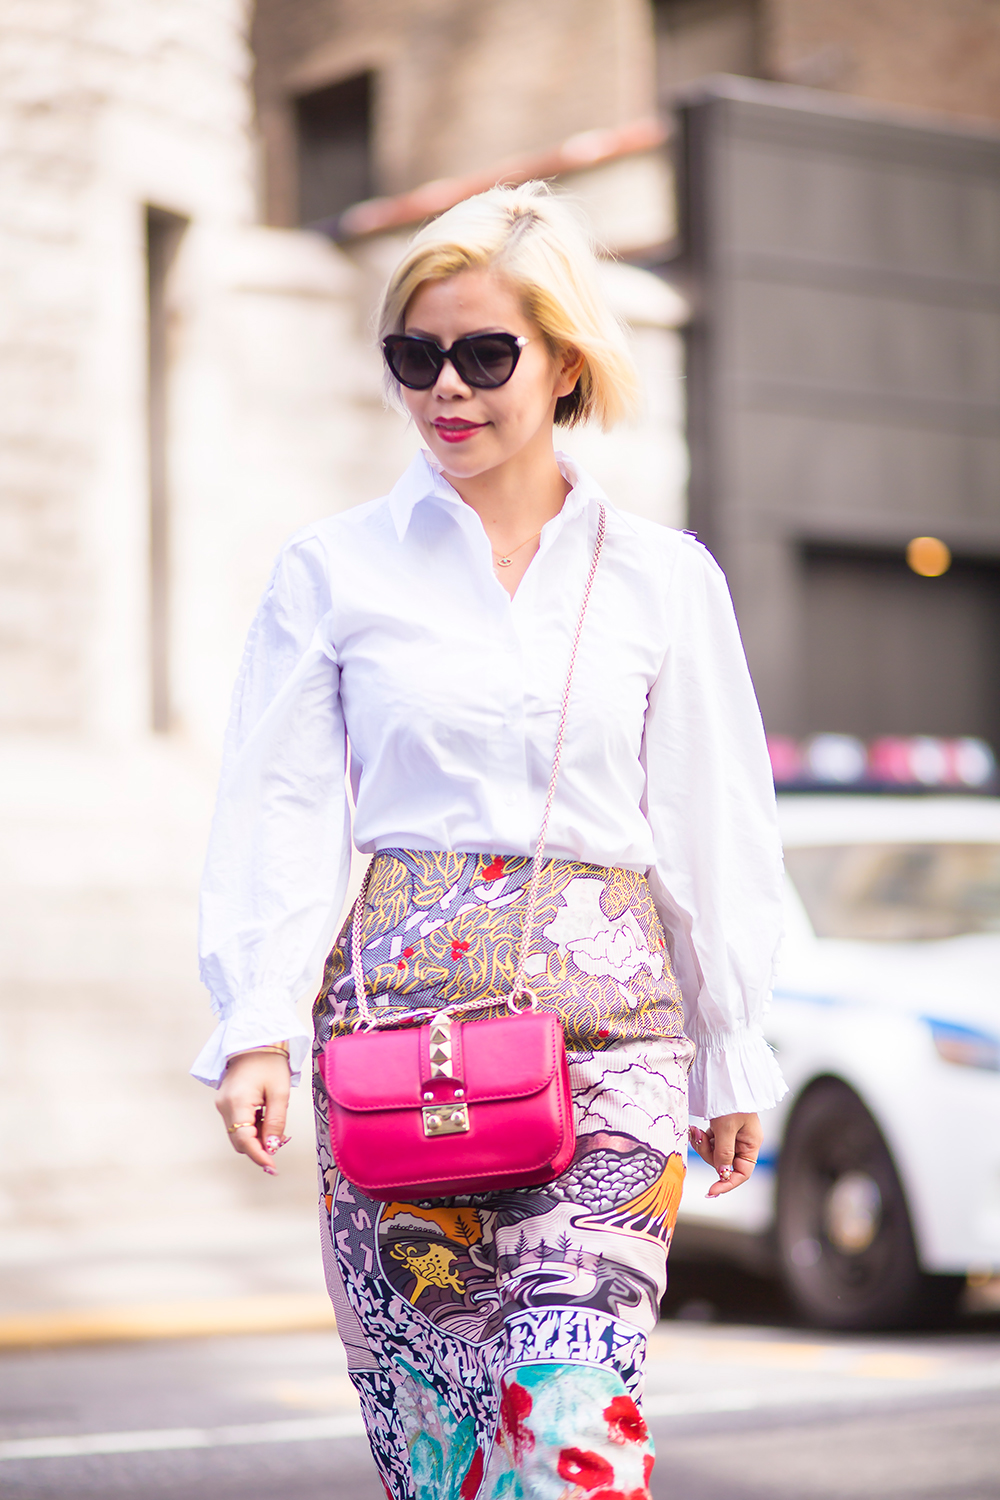 New York Fashion Week 2015- Street Style- Fashion blogger Crystal Phuong